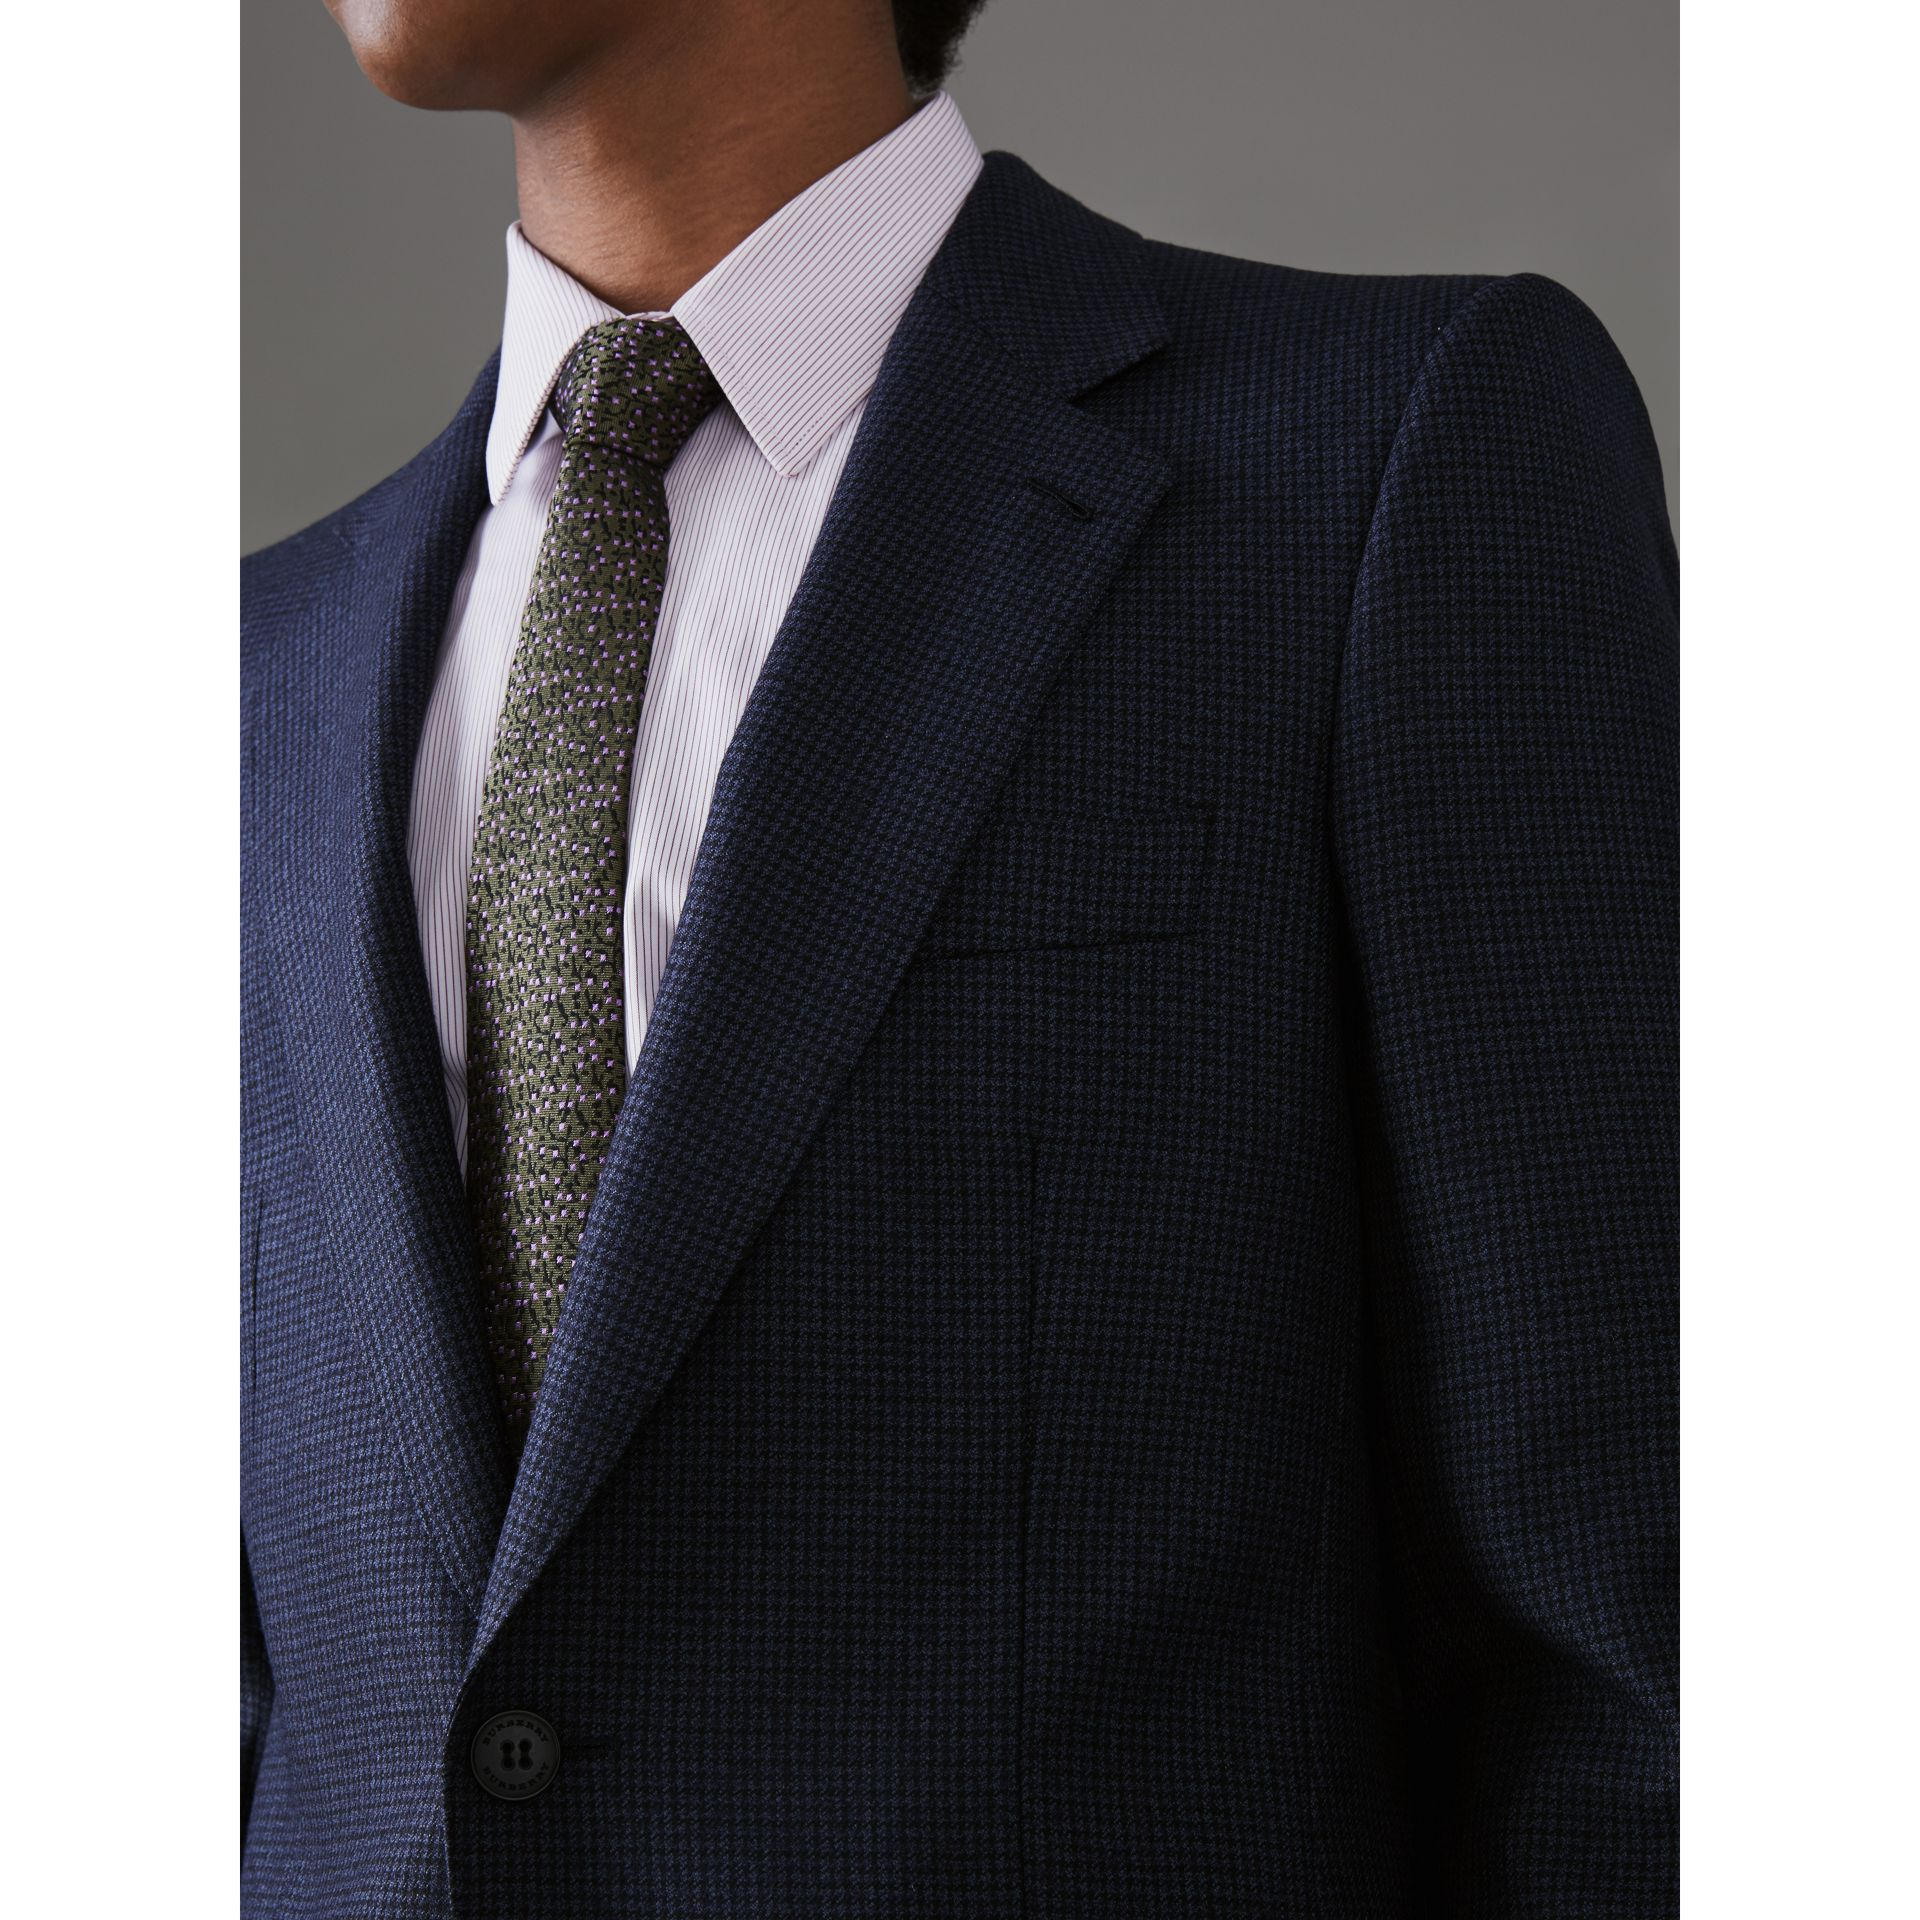 Slim Fit Puppytooth Wool Suit in Navy - Men | Burberry United States - gallery image 1